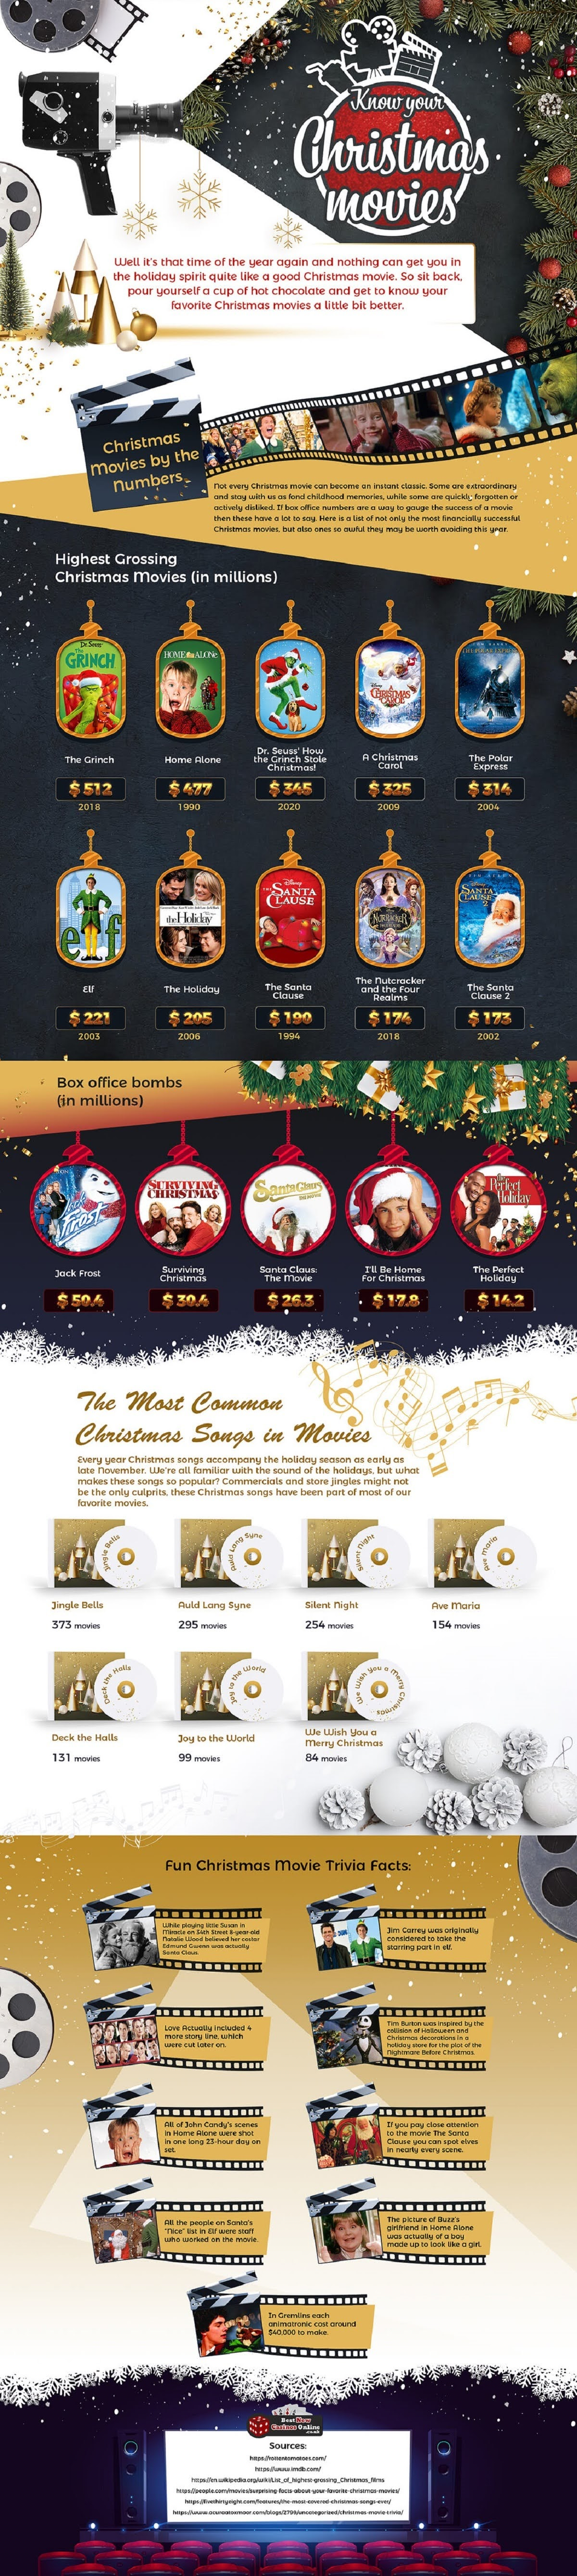 get-to-know-your-favourite-christmas-movies-infographic